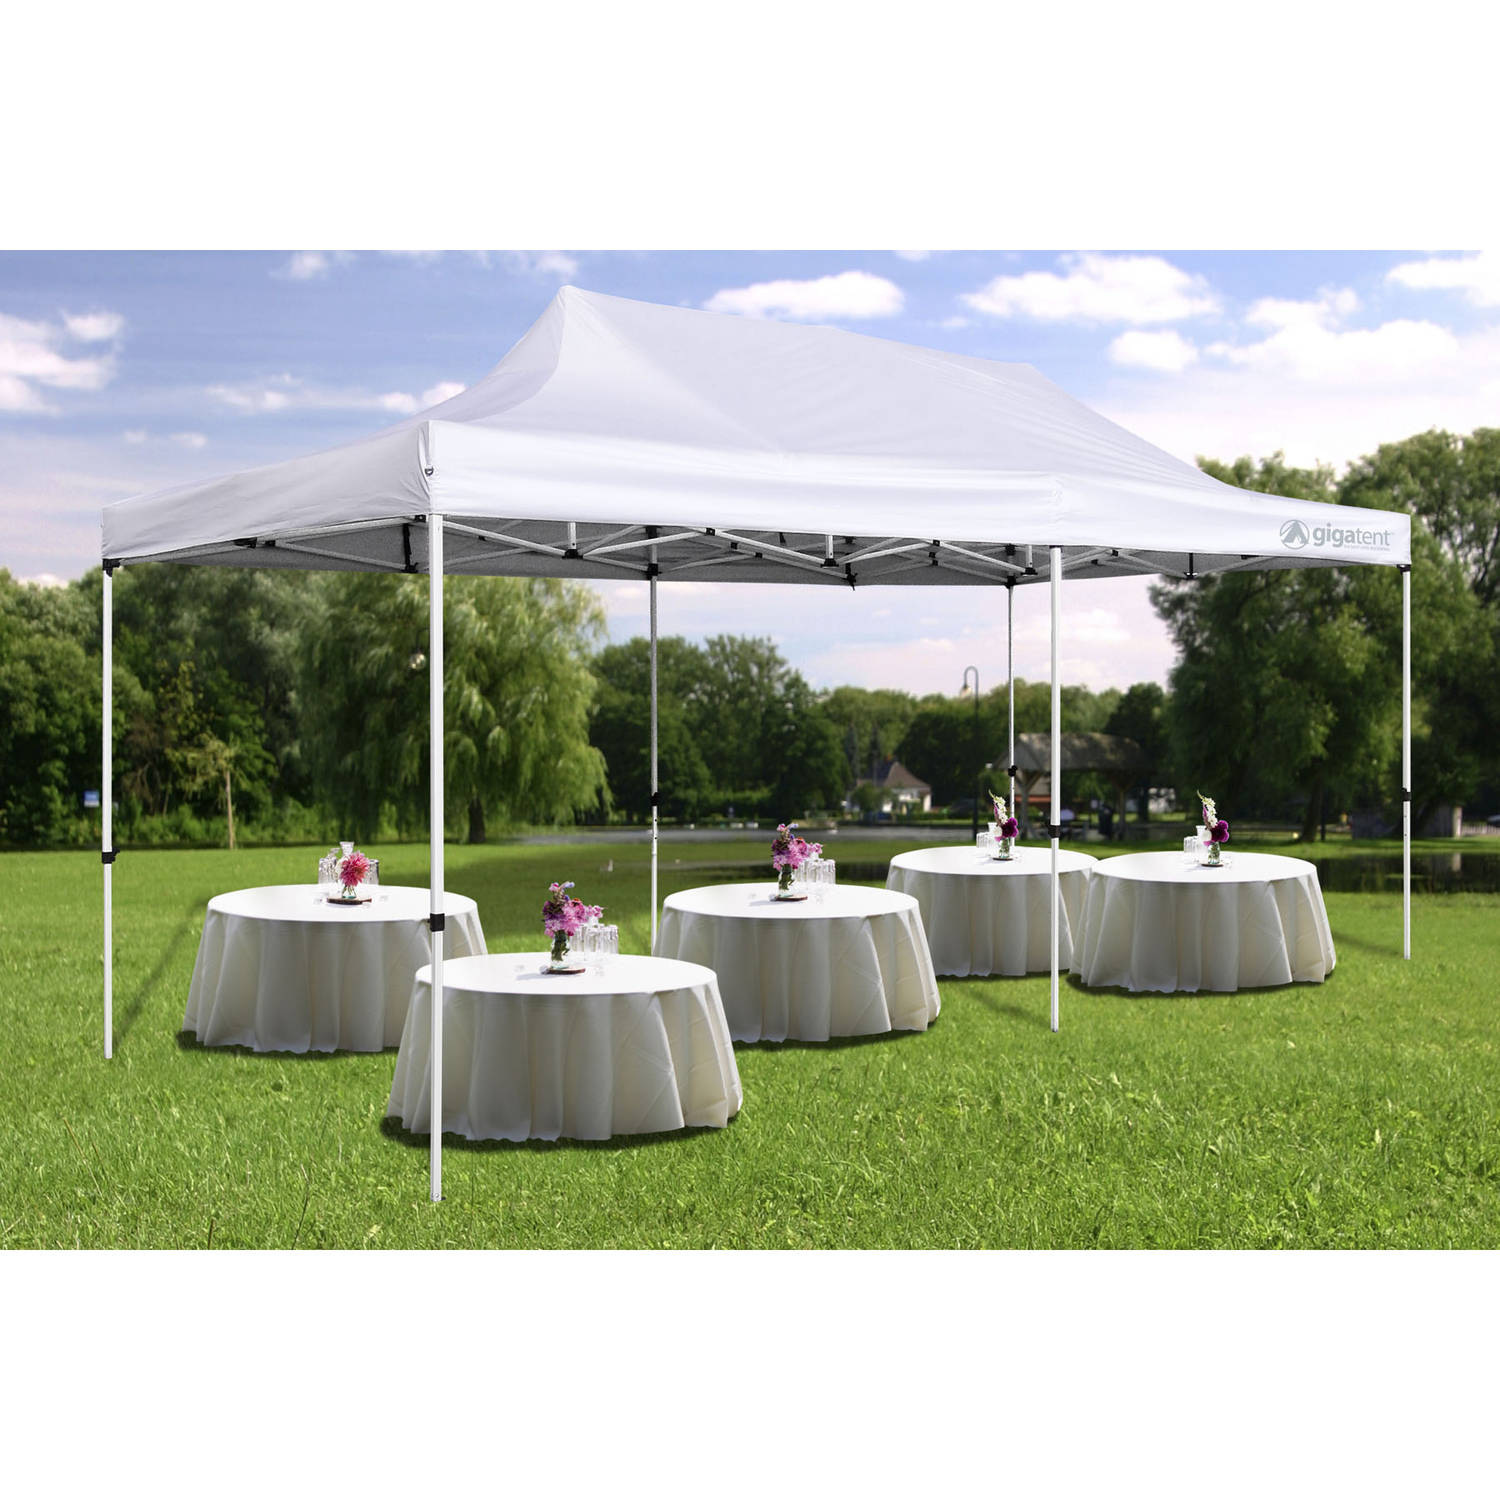 GigaTent The Party Tent 10' x 20' Canopy